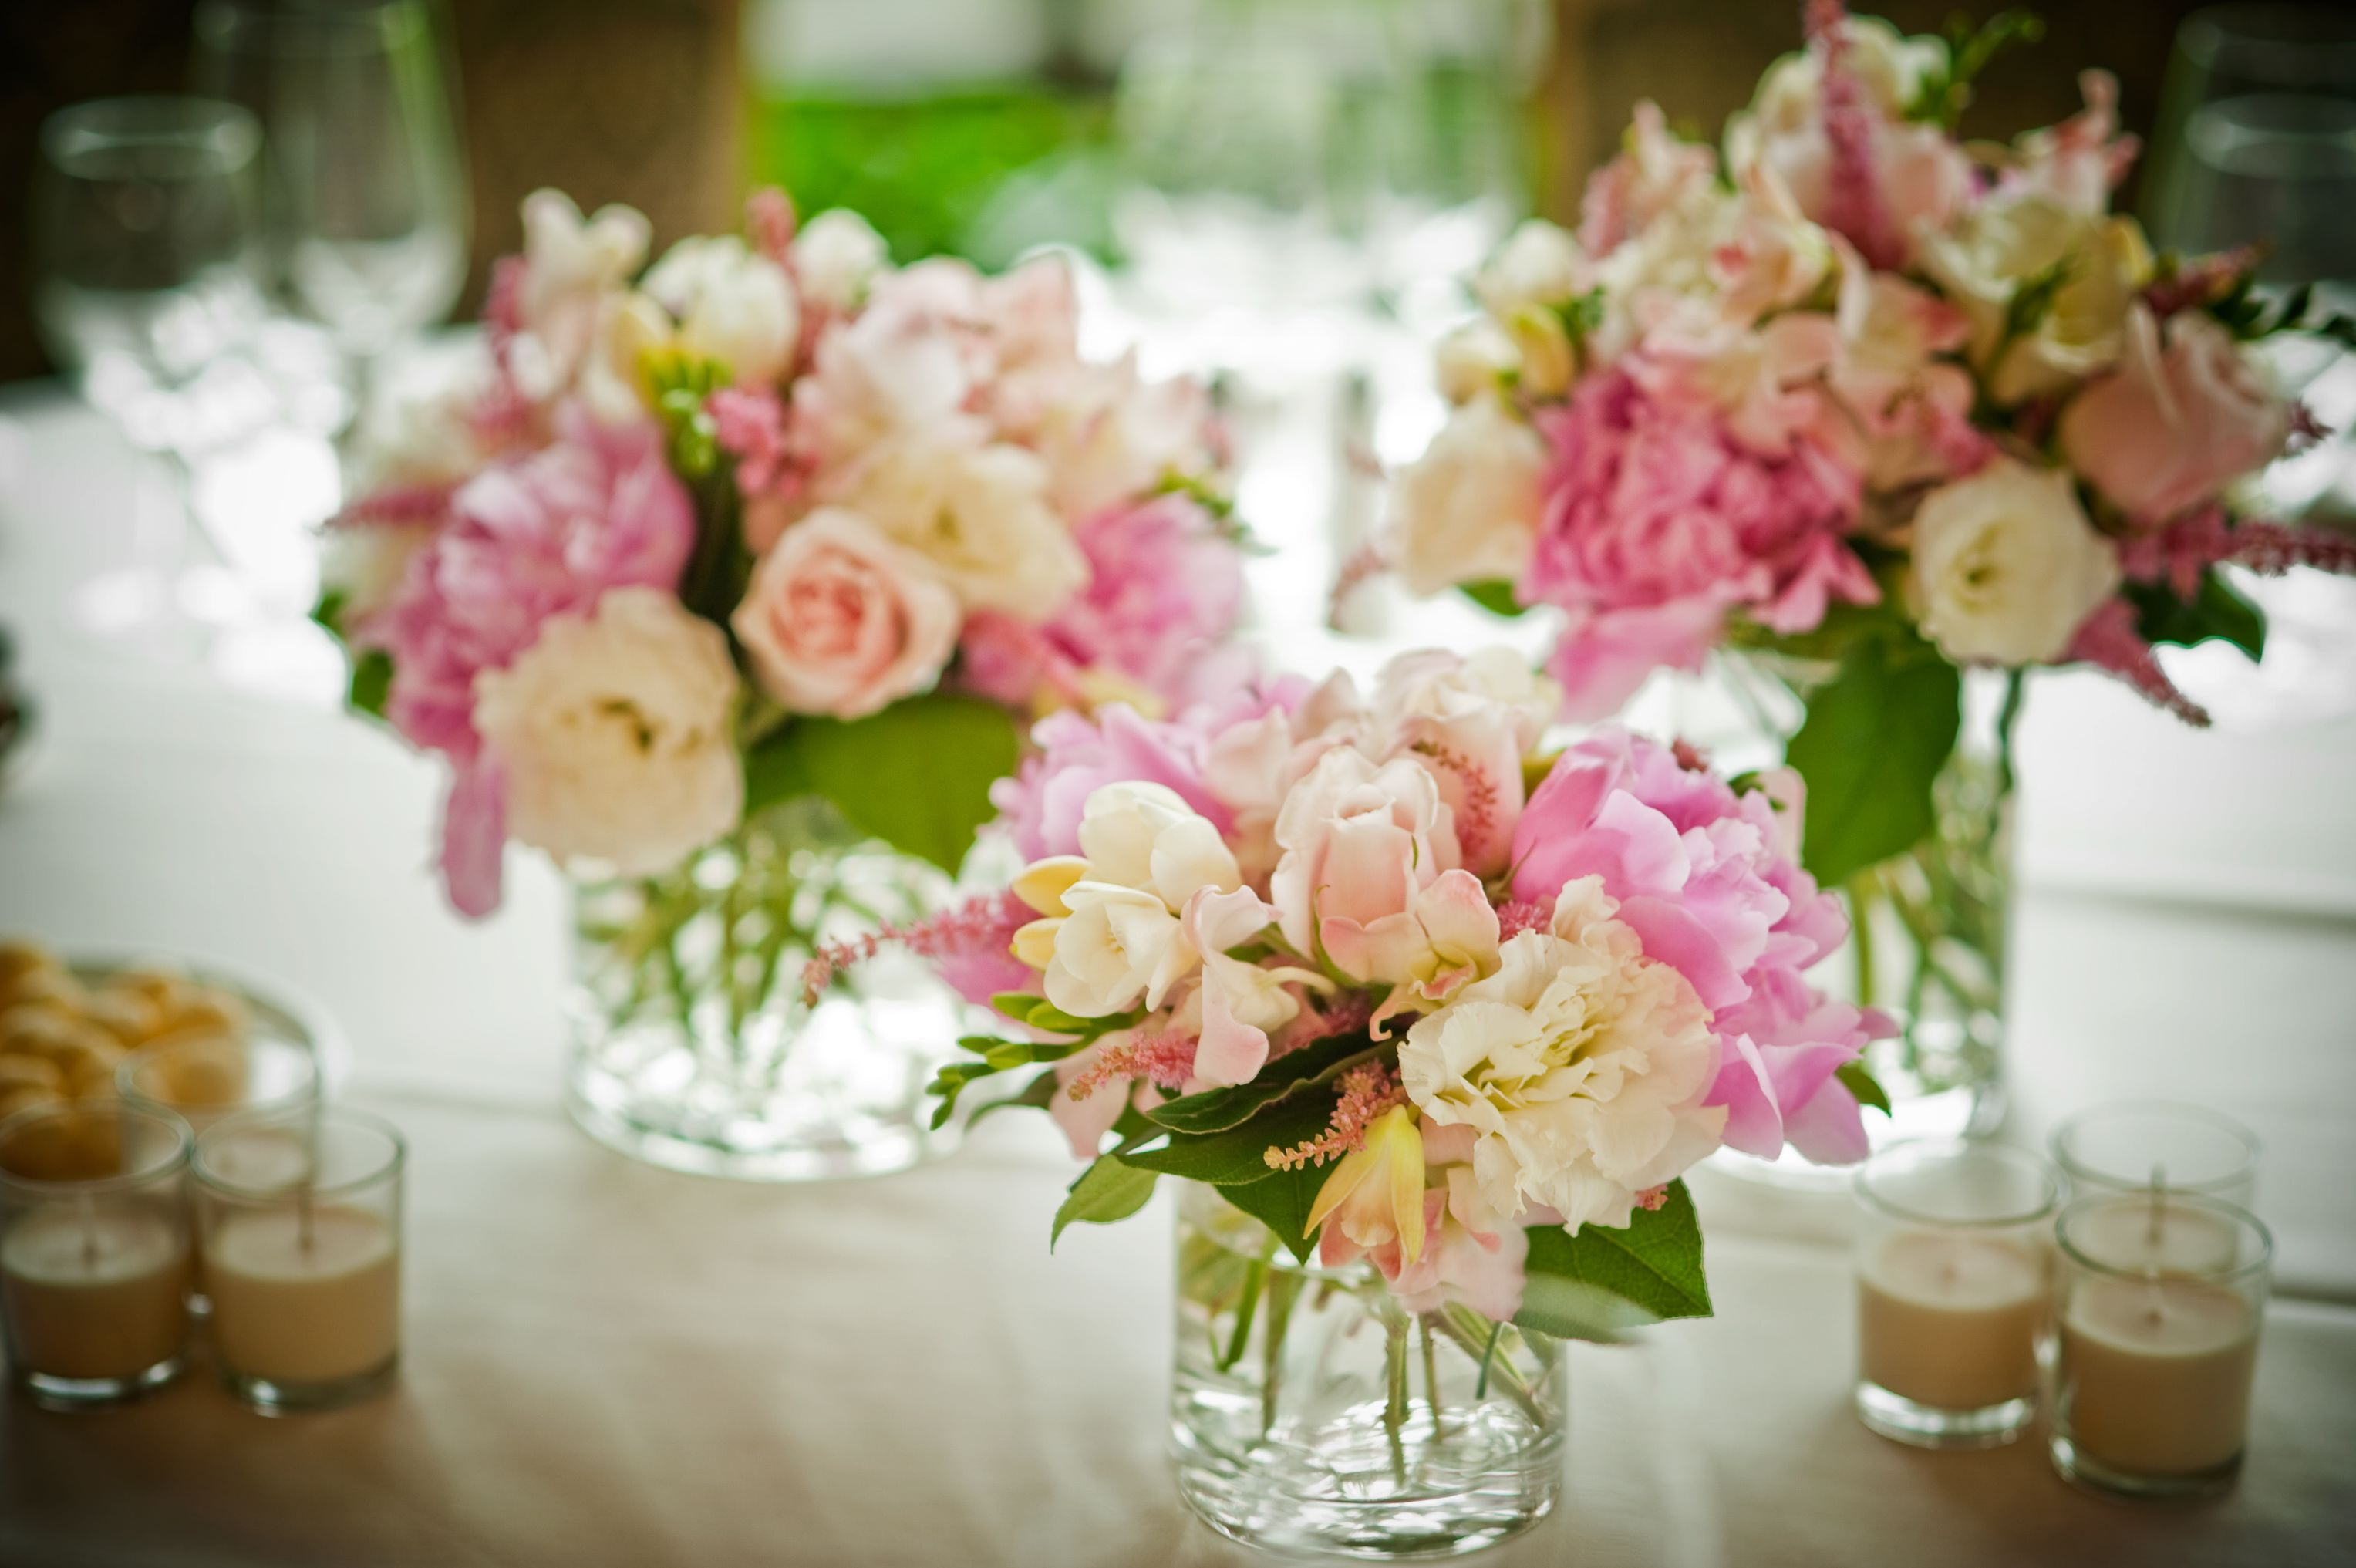 Wedding flower guide floral arrangements you will need